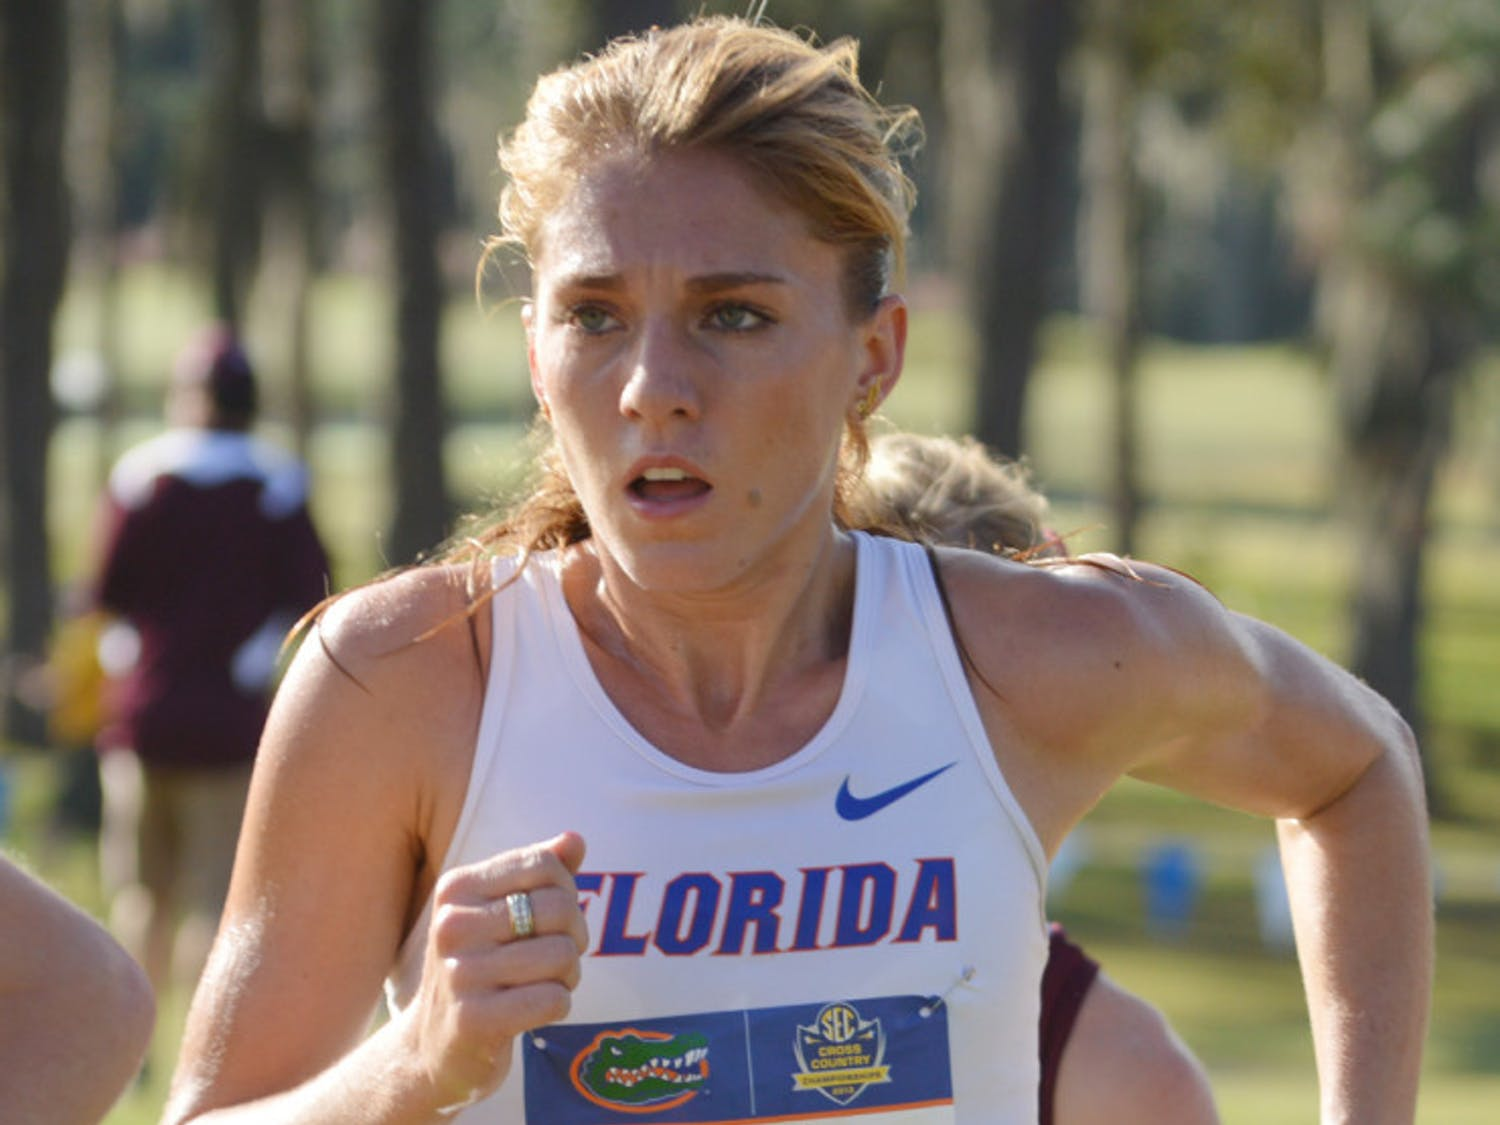 Cory McGee runs in the Southeastern Conference Cross Country Championships on the Mark Bostick Golf Course on Nov. 1, 2013. McGee won her first event of the 2014 track and field season on Jan. 11.